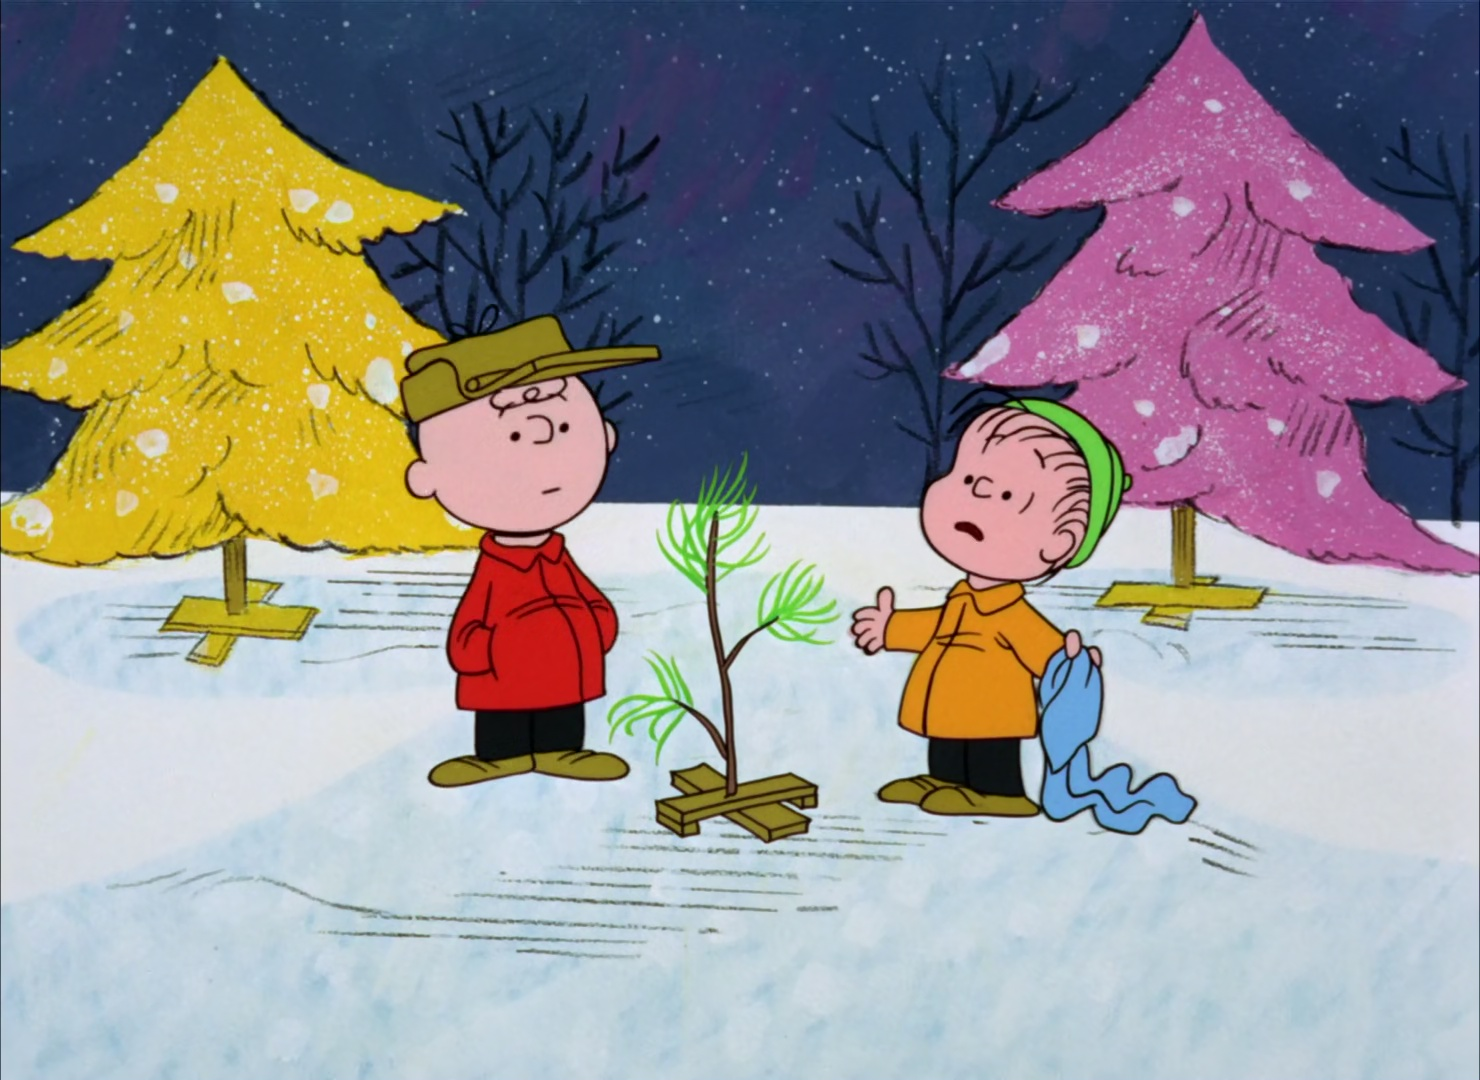 File:Front-charliebrown.jpg